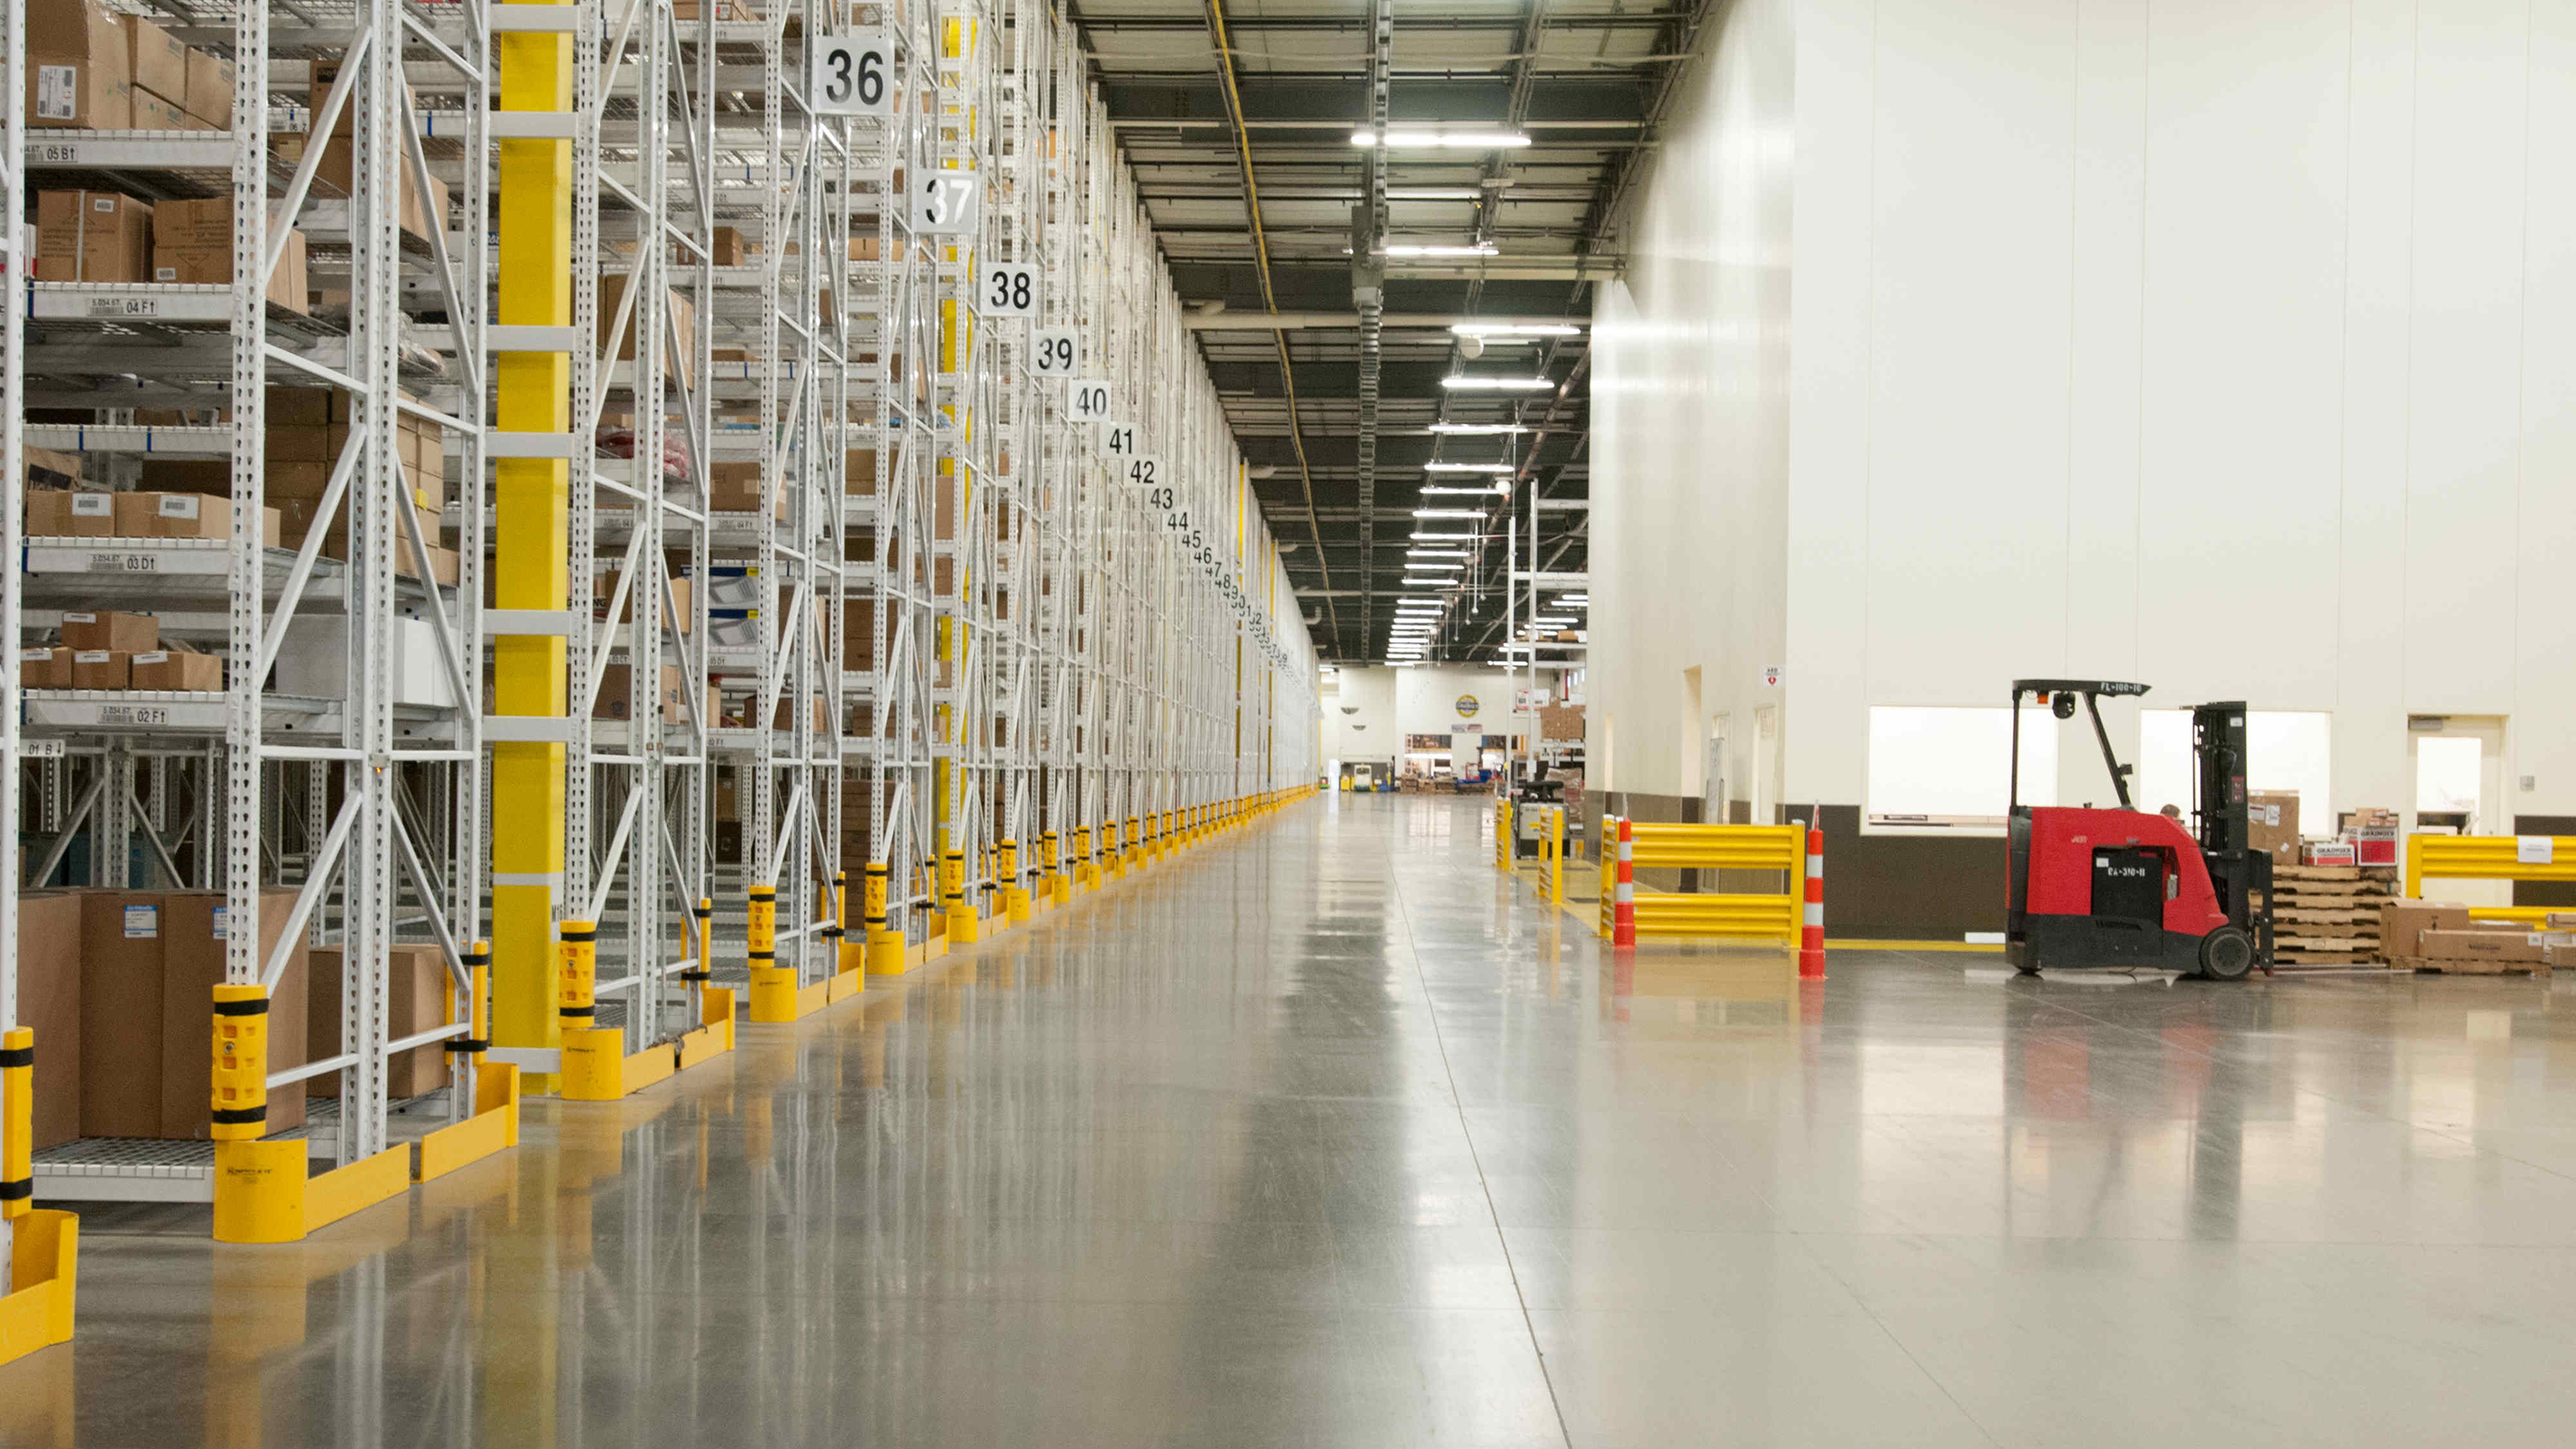 Grainger continues to invest in its supply chain capabilities, so it can ensure our customers get the right products, in the right place, at the right time.